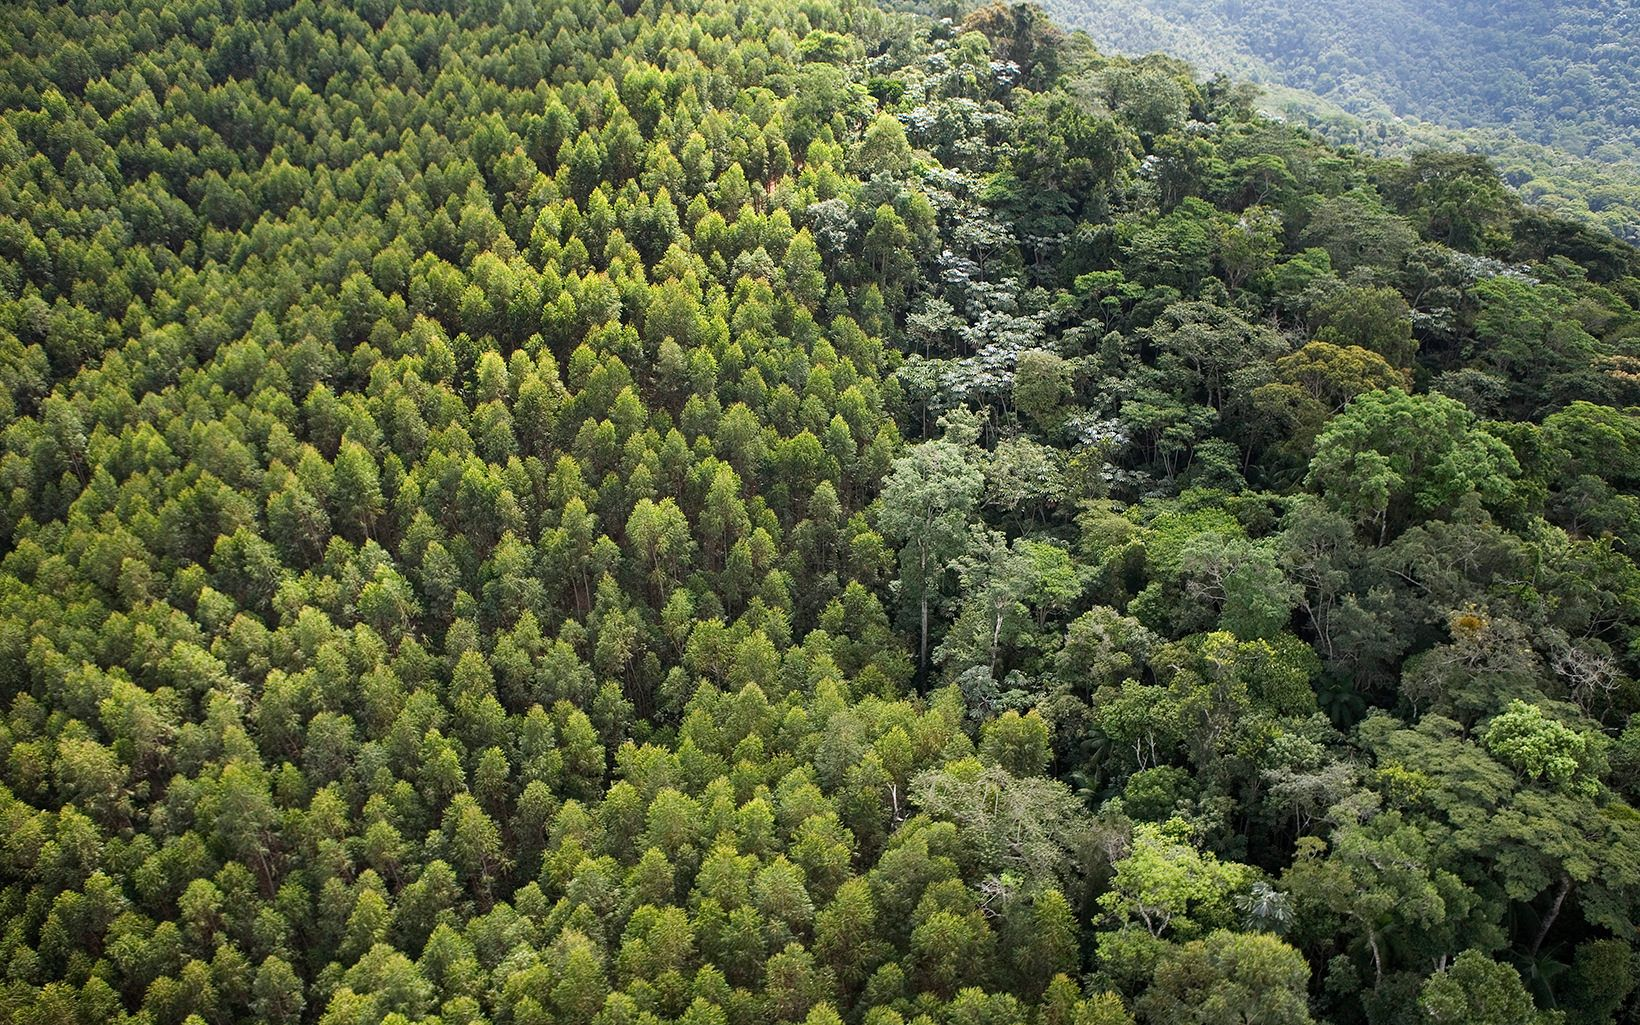 Aerial view of contrasting forest of planted eucalyptus (on left) and natural forest; near the Cachoeira Reservoir.